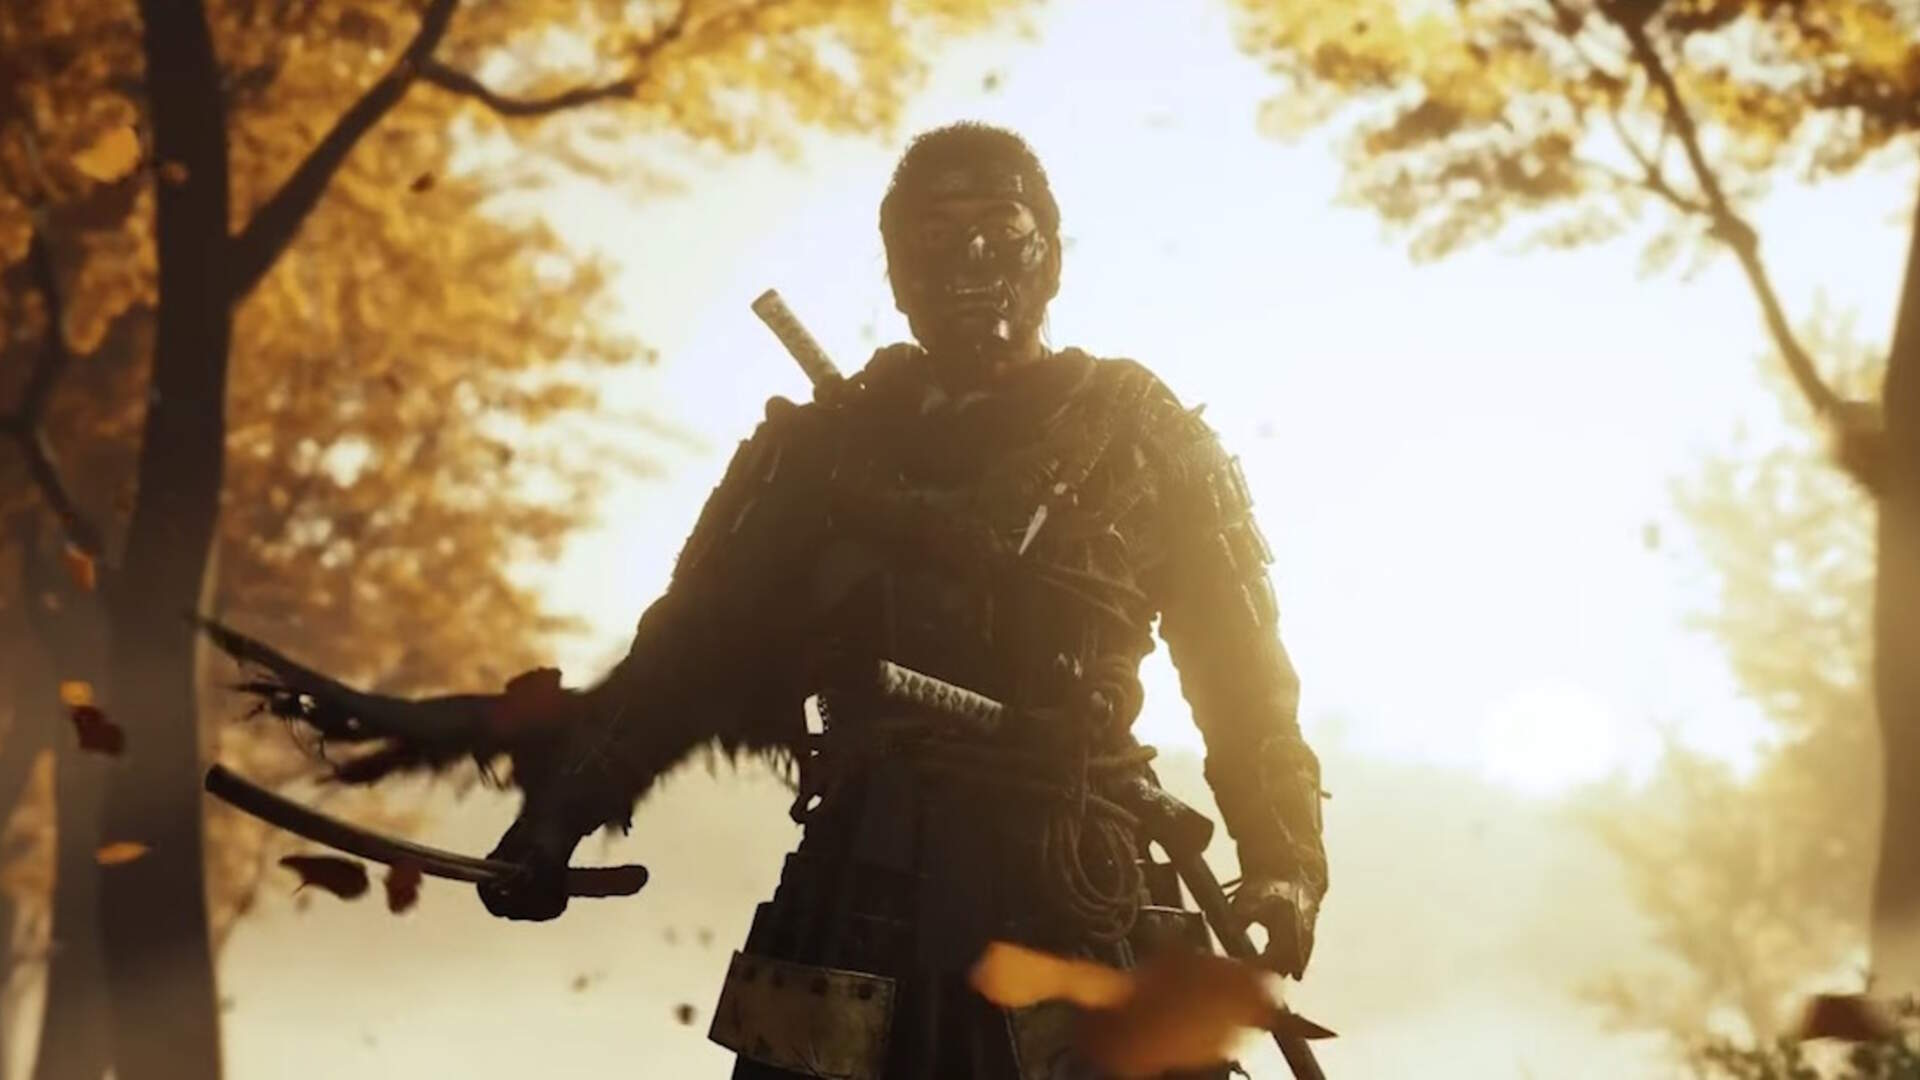 Ghost of Tsushima Release Date, Gameplay, New Trailers - Everything we Know